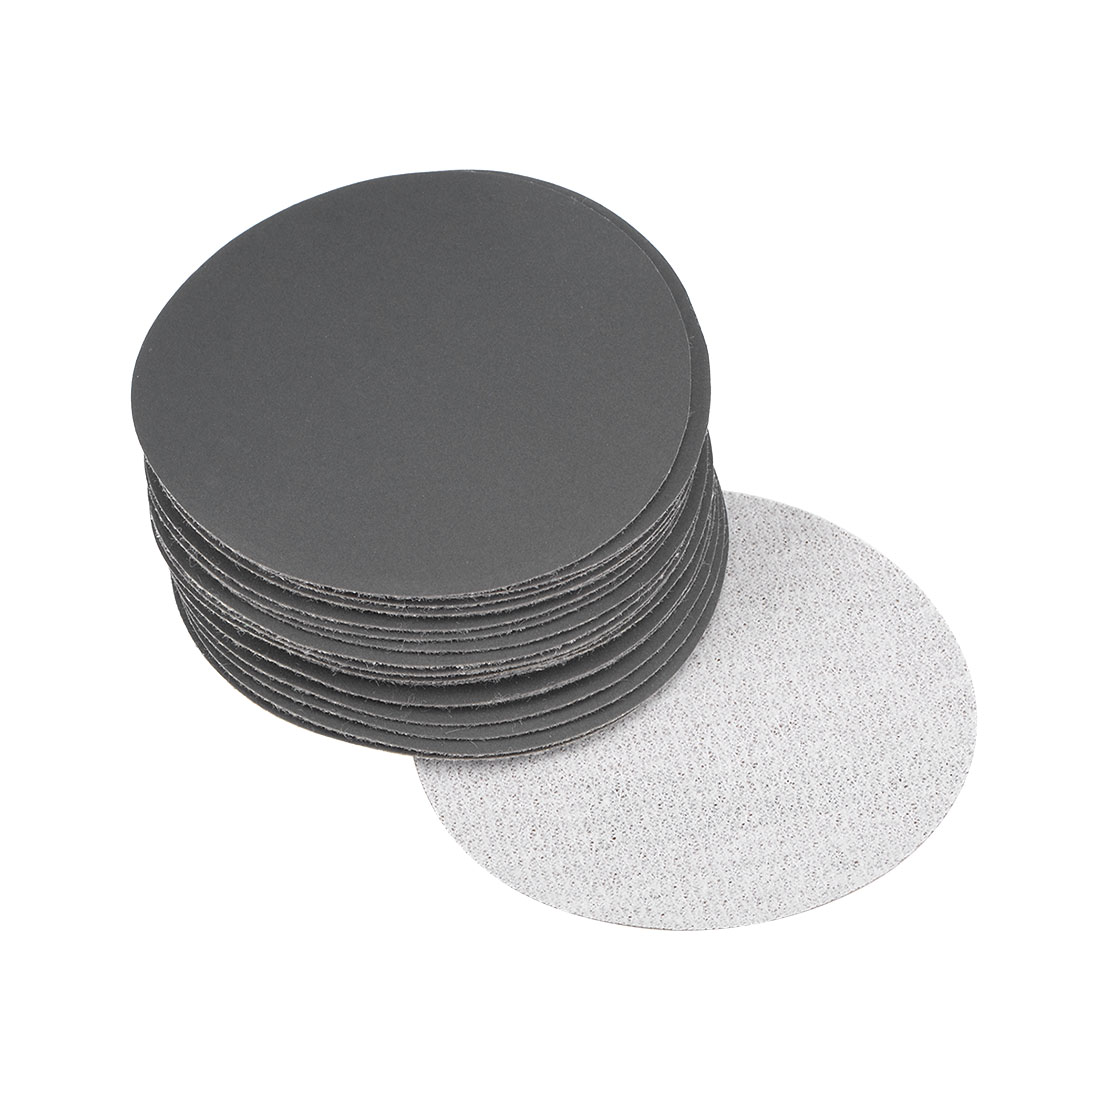 3 inch Wet Dry Discs 1000 Grit Hook and Loop Sanding Disc Silicon Carbide 20pcs